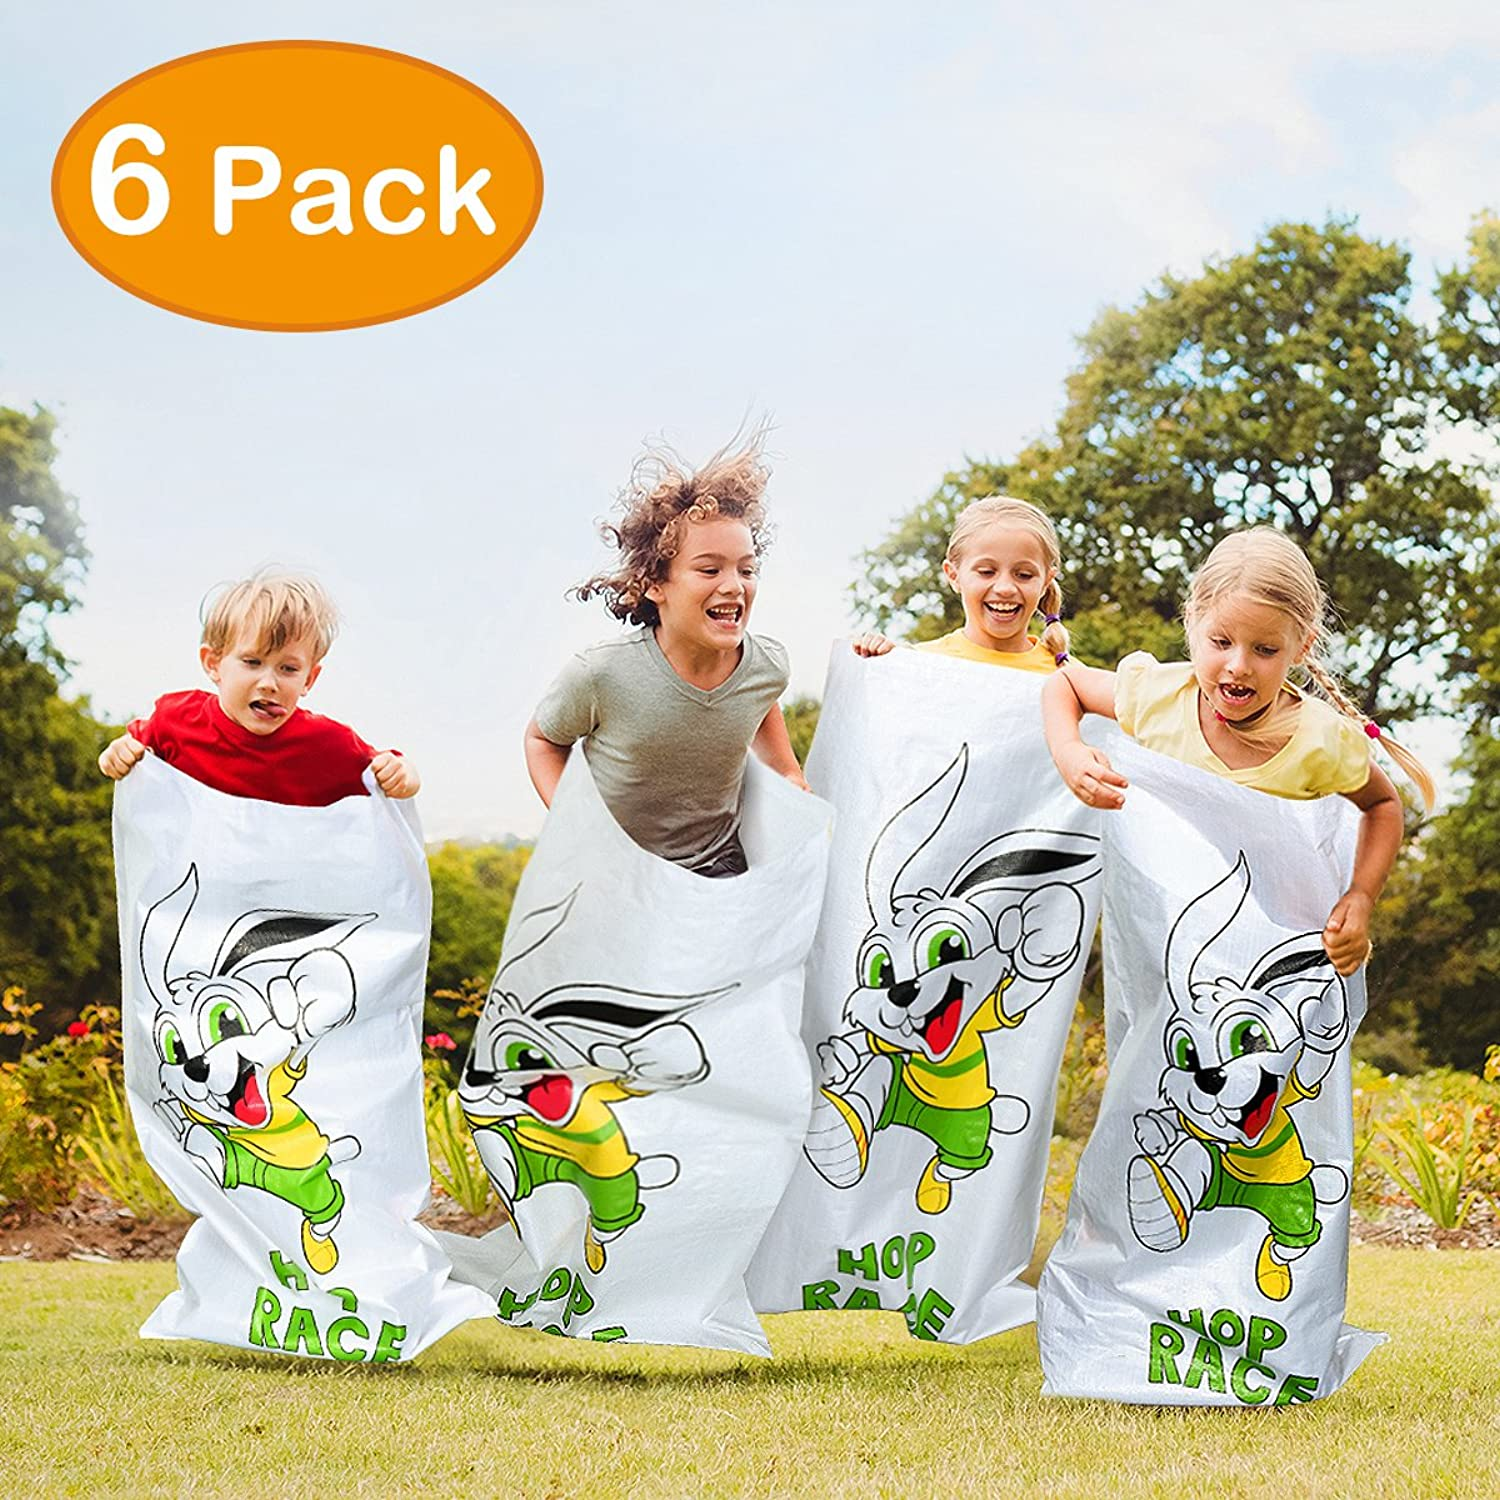 IBaseToy Easter Bag Birthday Party Games 6 Pcs Potato Sack Race Game 24 x41  Luau Hop Party Activity